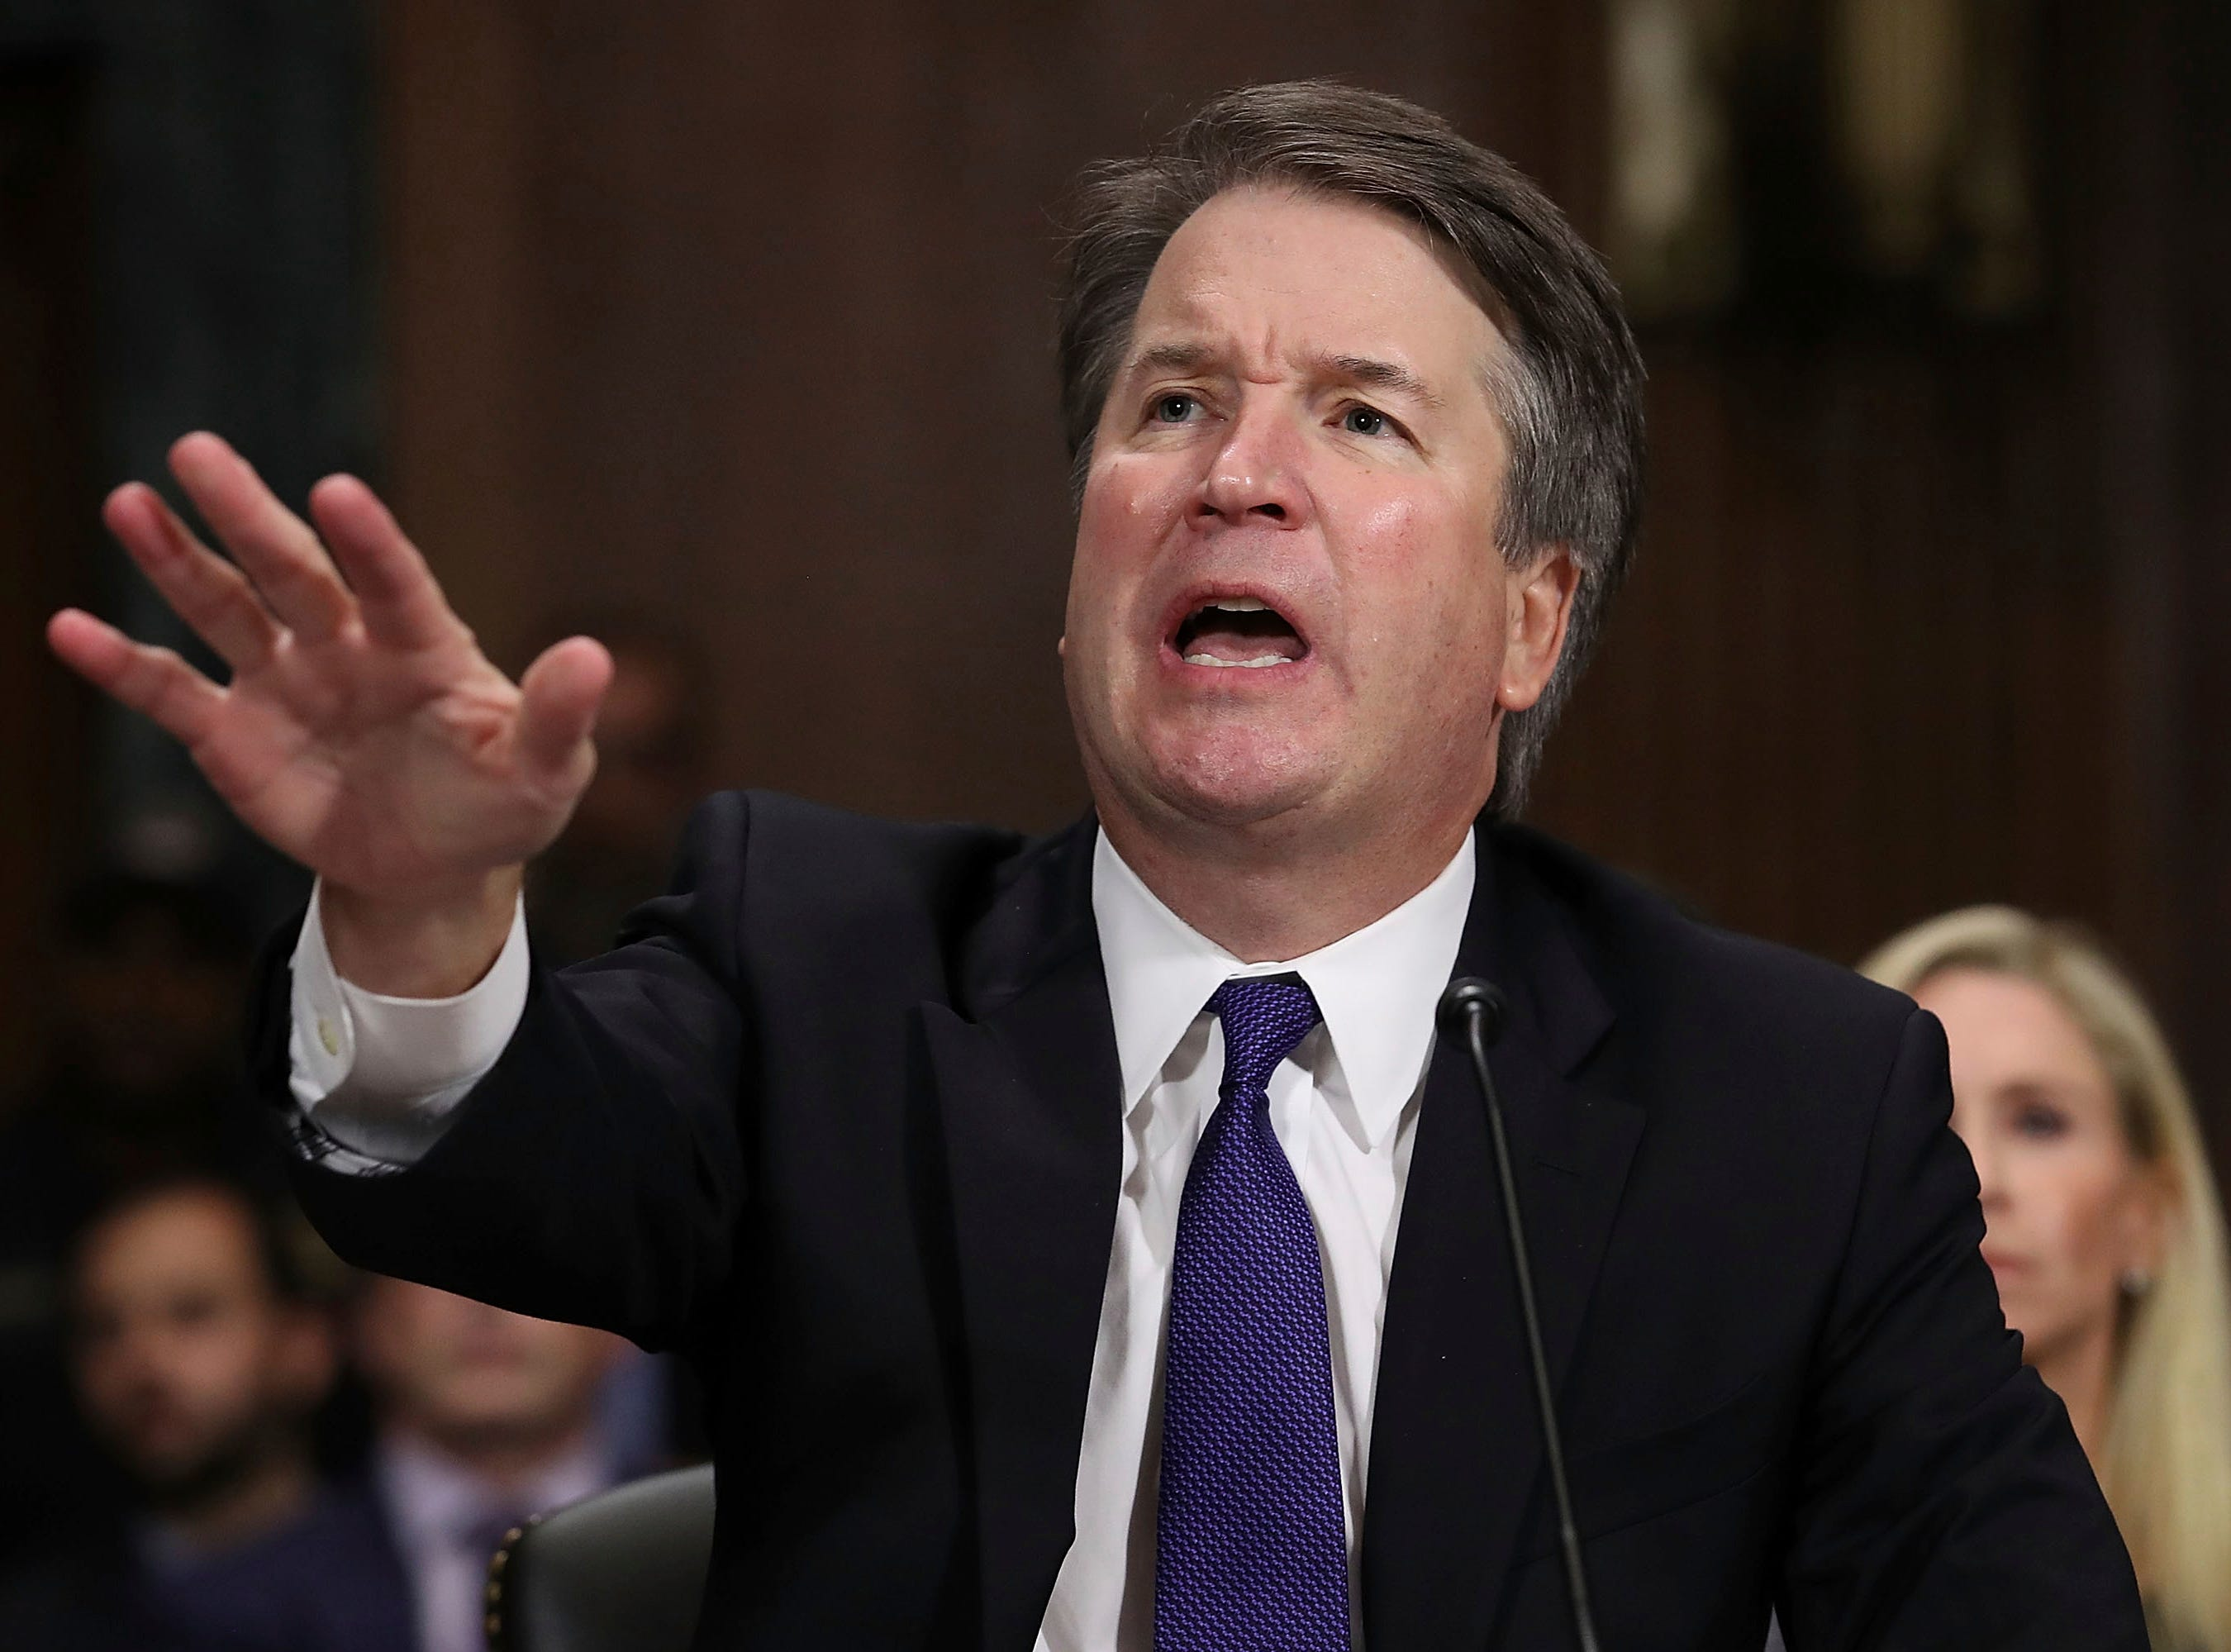 Letter: Call in FBI before confirming Kavanaugh to Supreme Court